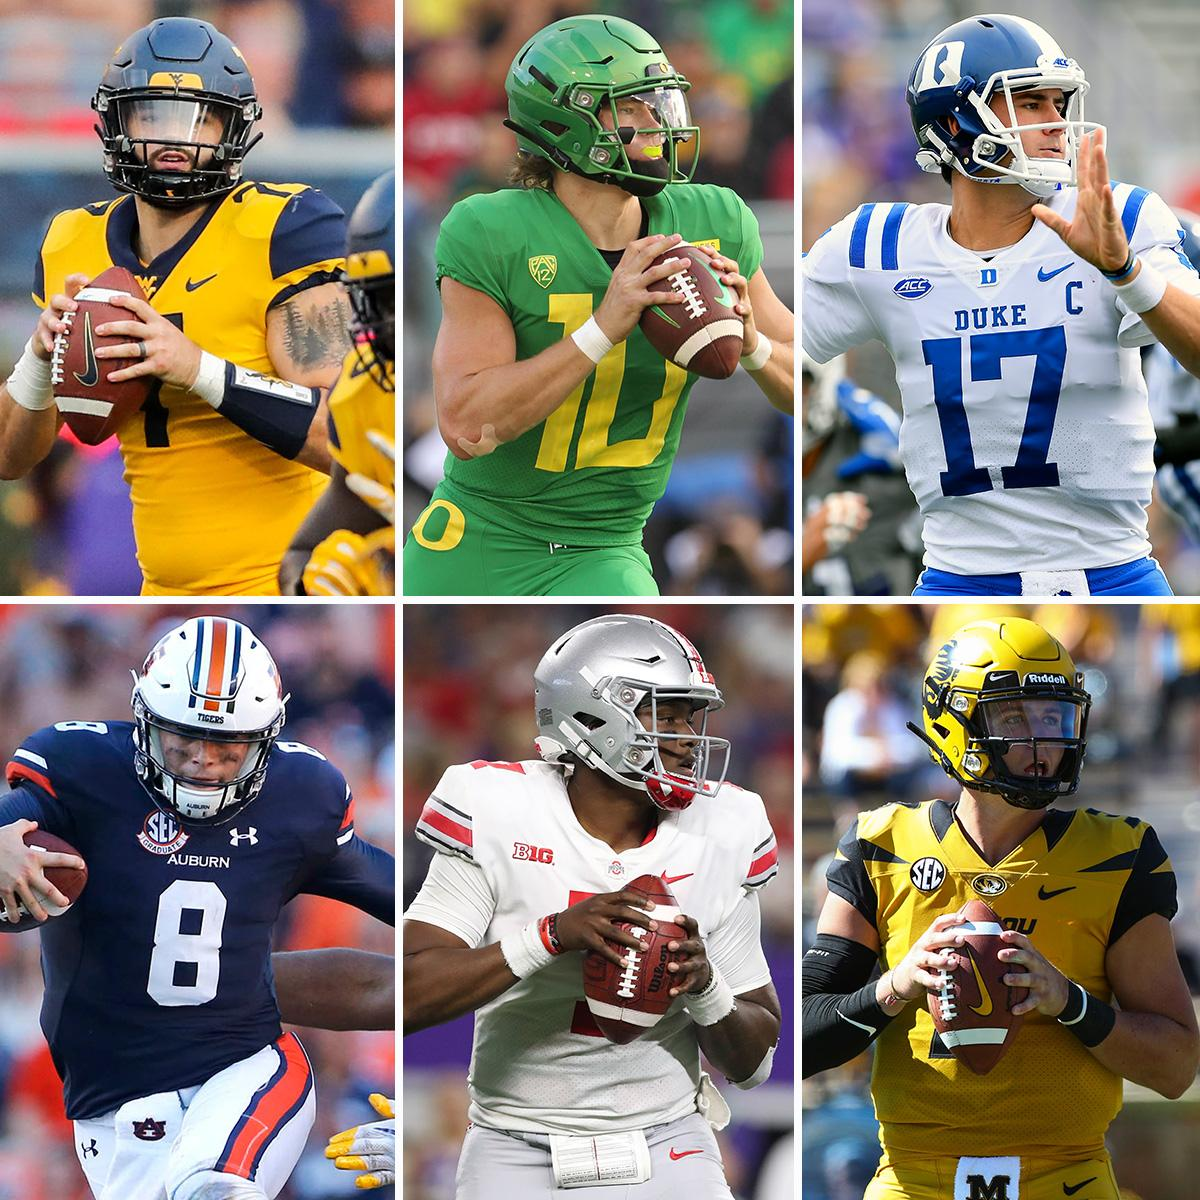 Top 25 prospects 2.0 (via @MoveTheSticks + @BuckyBrooks)  Six QBs ranked in the top 20!  10. @willgrier_, @WVUfootball 12. @Jarrett_Stidham, @FootballAU  20. Daniel Jones,    F@Duke_FBULL:  https://t.co/9YKWJciX2F